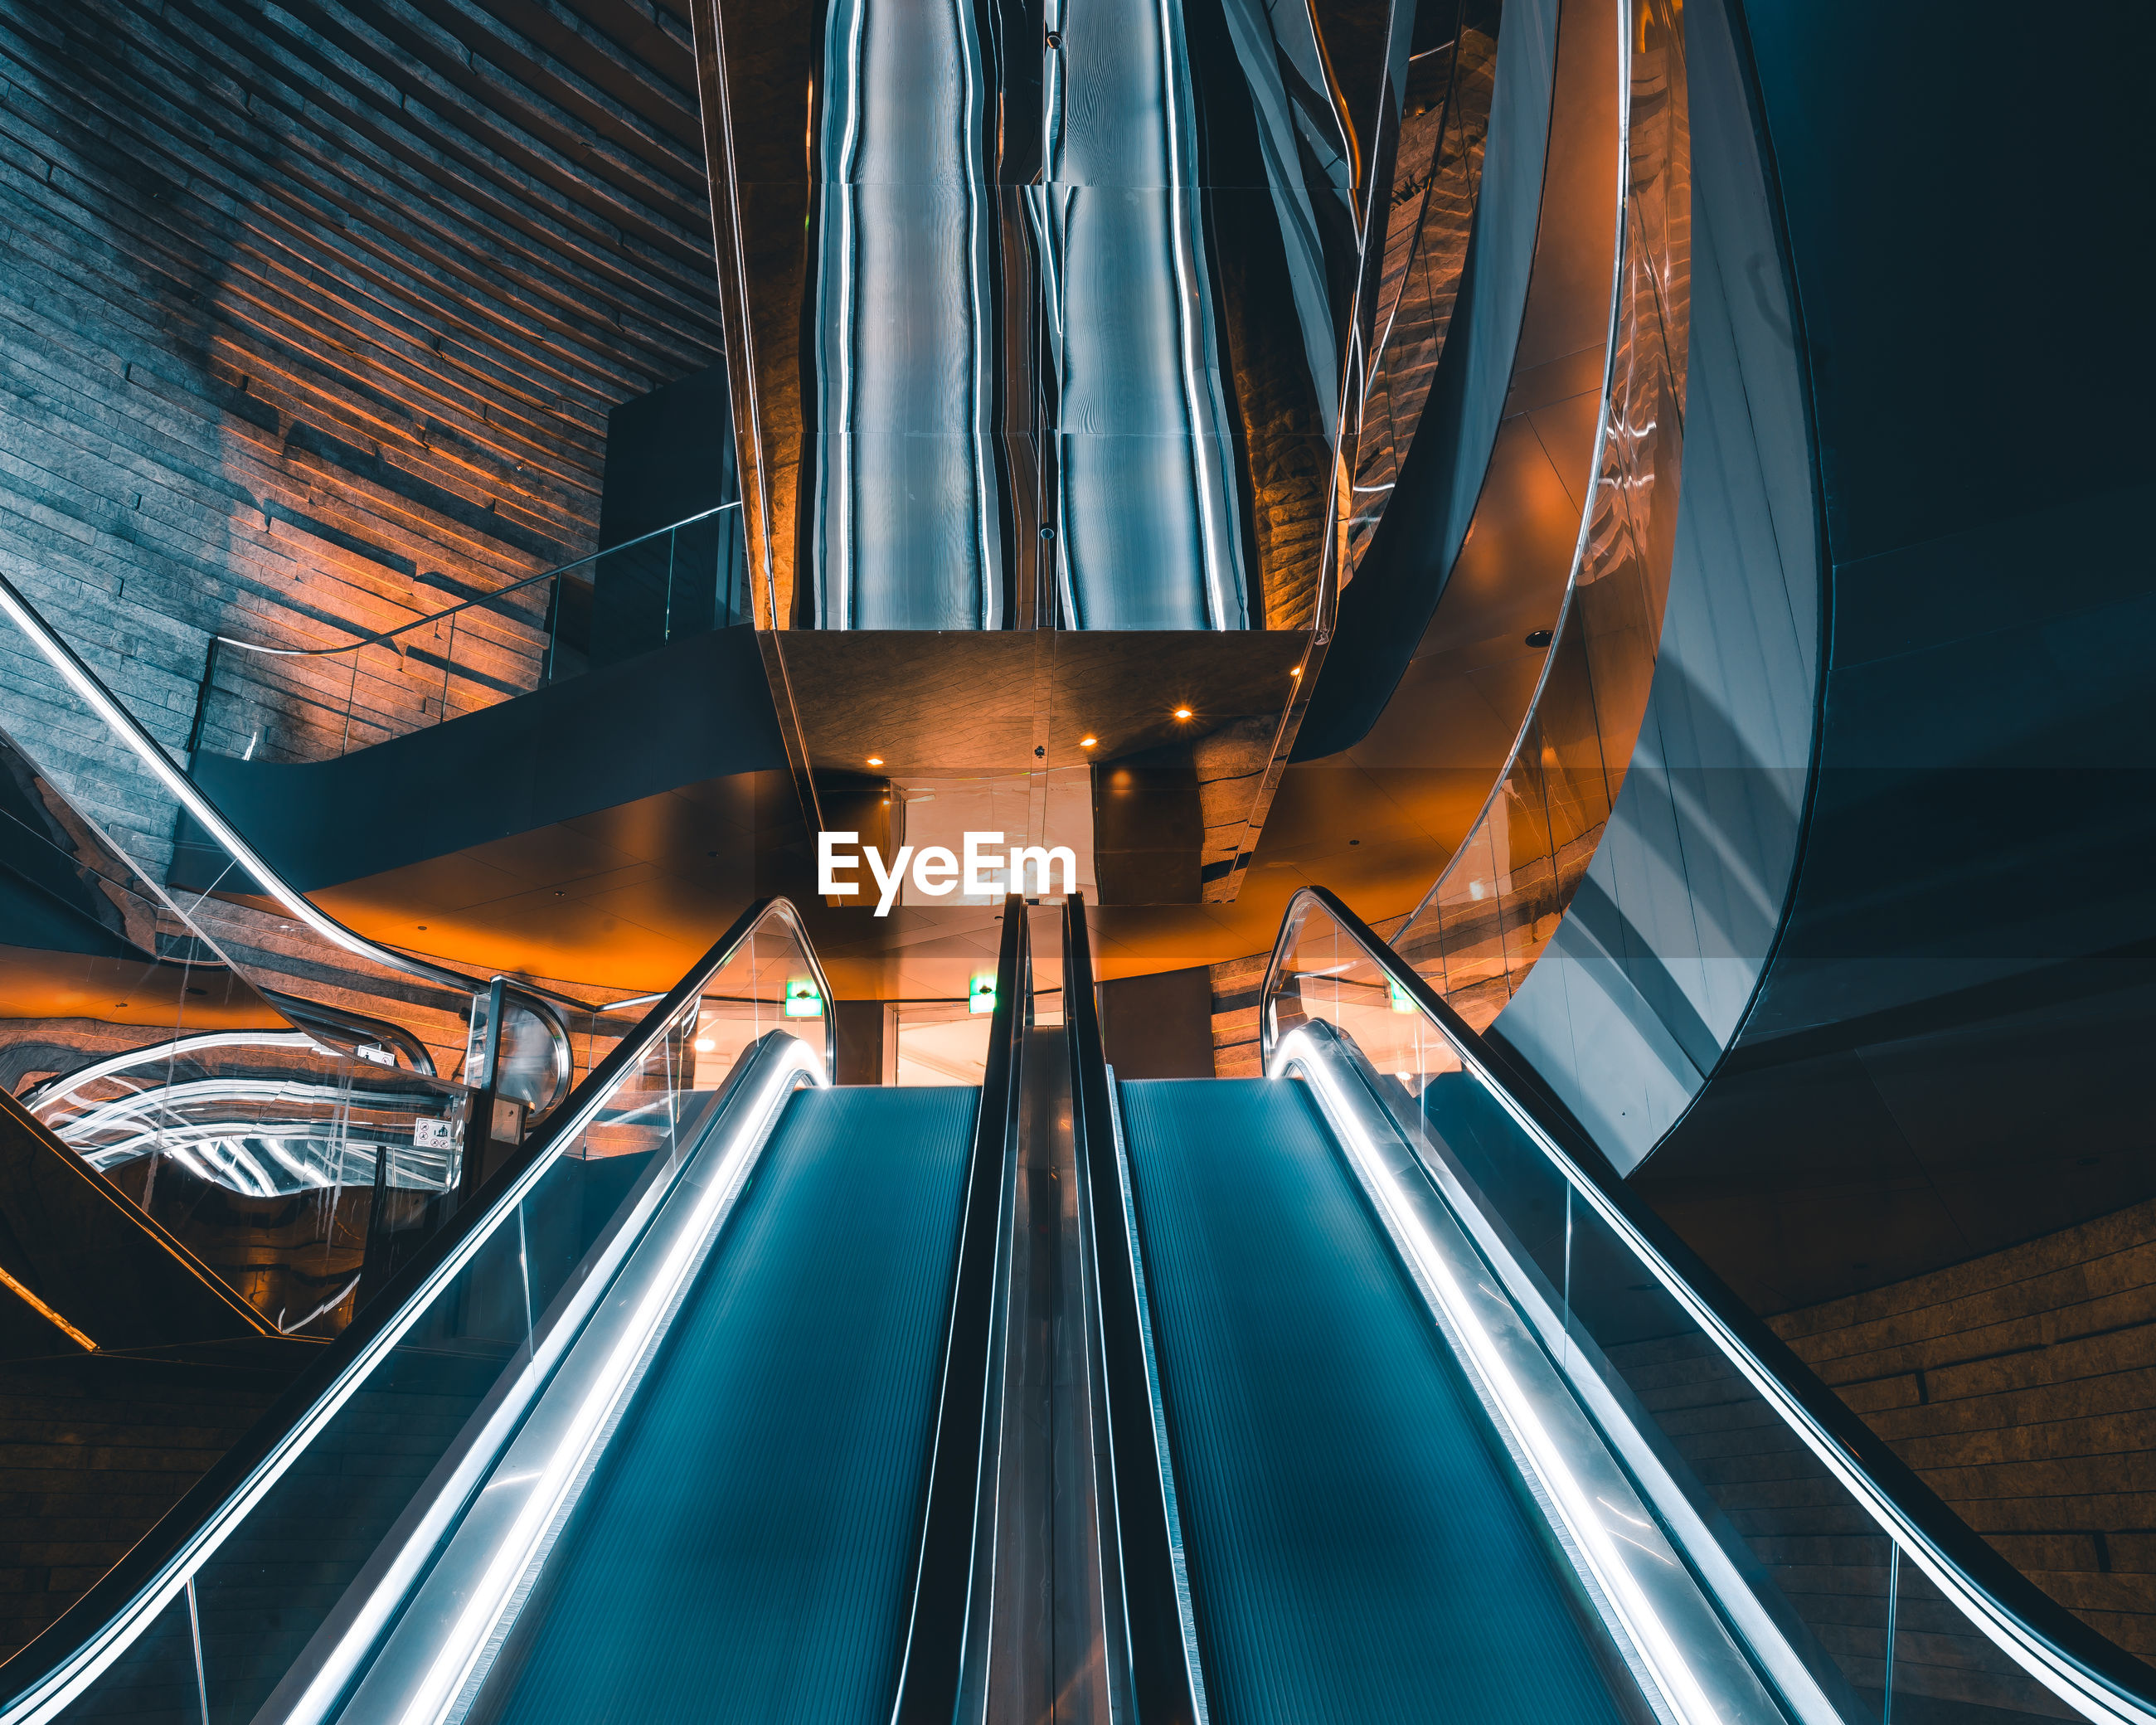 Low angle view of escalator in shopping mall